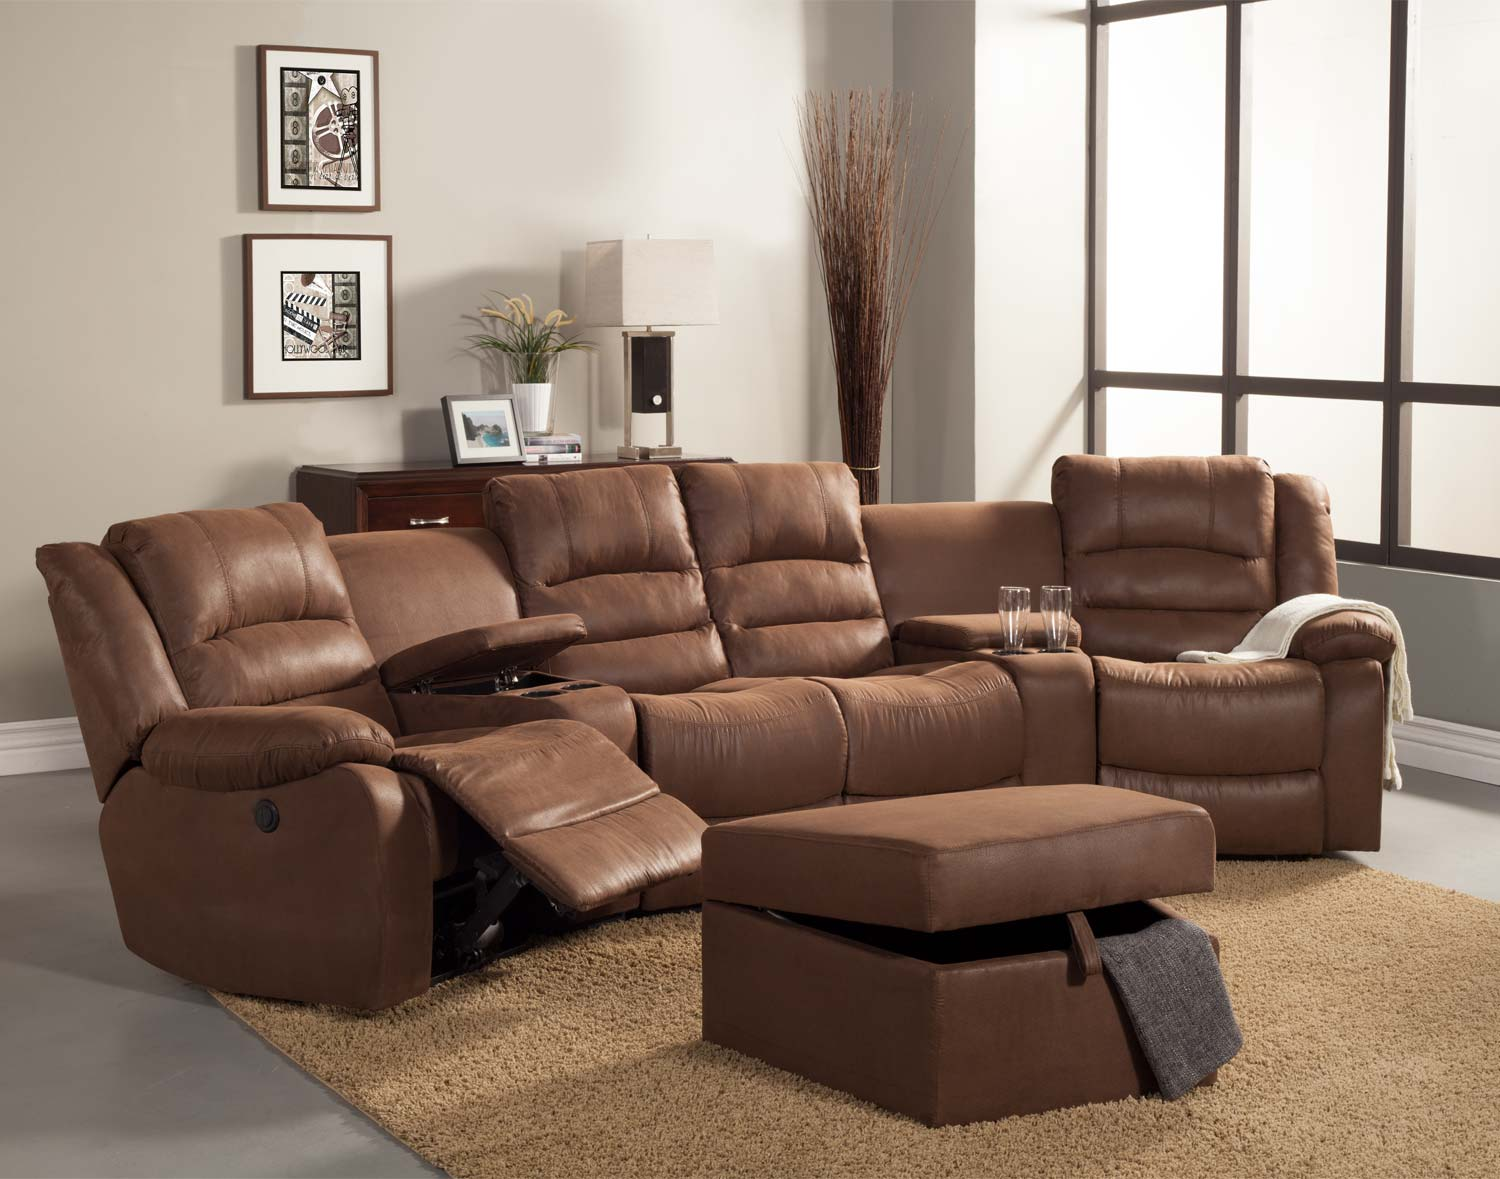 Purchase Homelegance U SECT Tucker Sectional Sofa Set Bomber Jacket Microfiber Product Photo